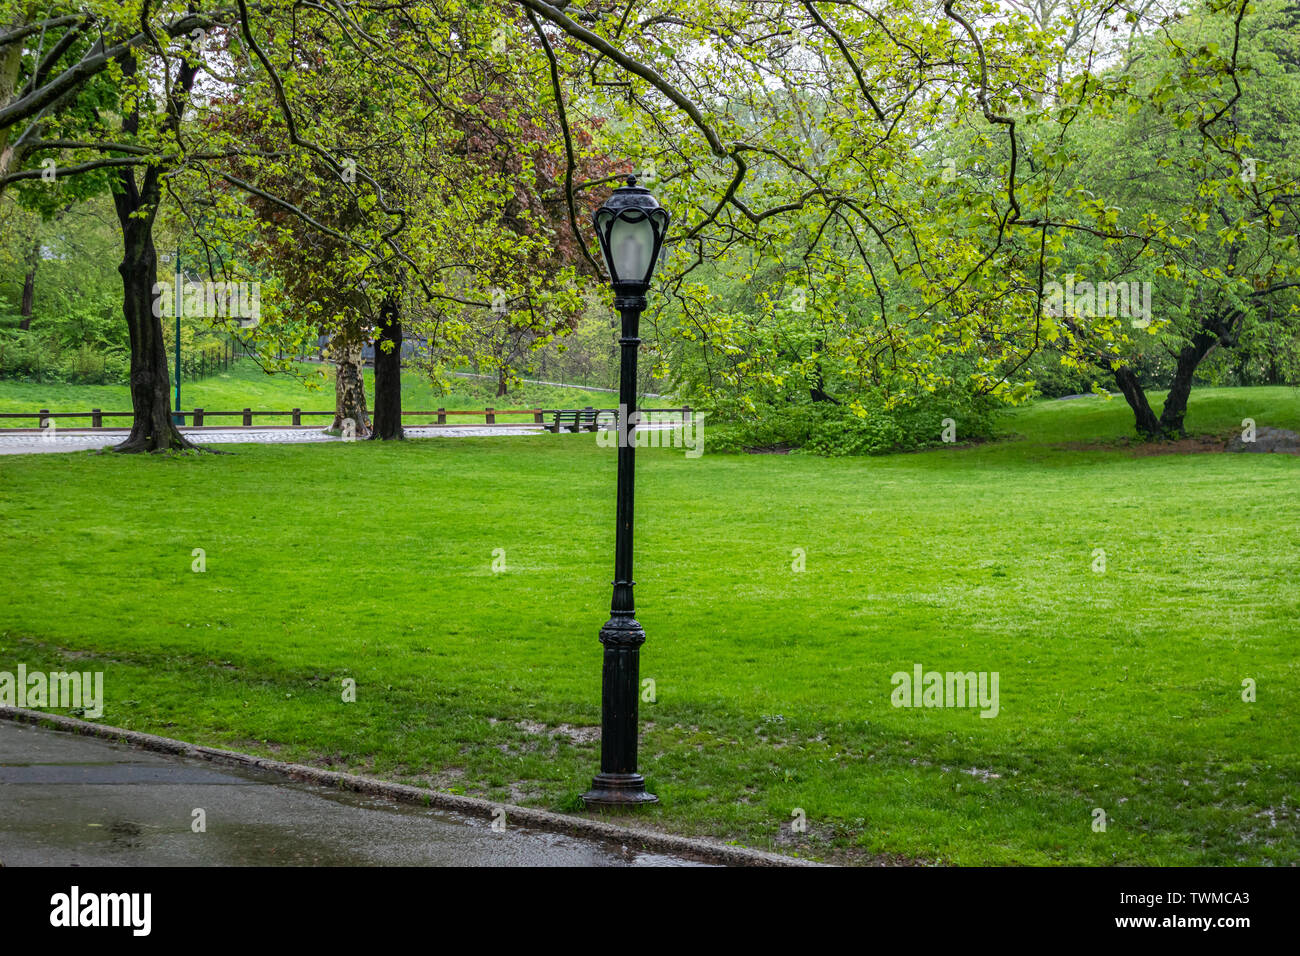 Raining in Central Park, New York city. Spring fresh tree foliage and green grass wet after the rain - Stock Image